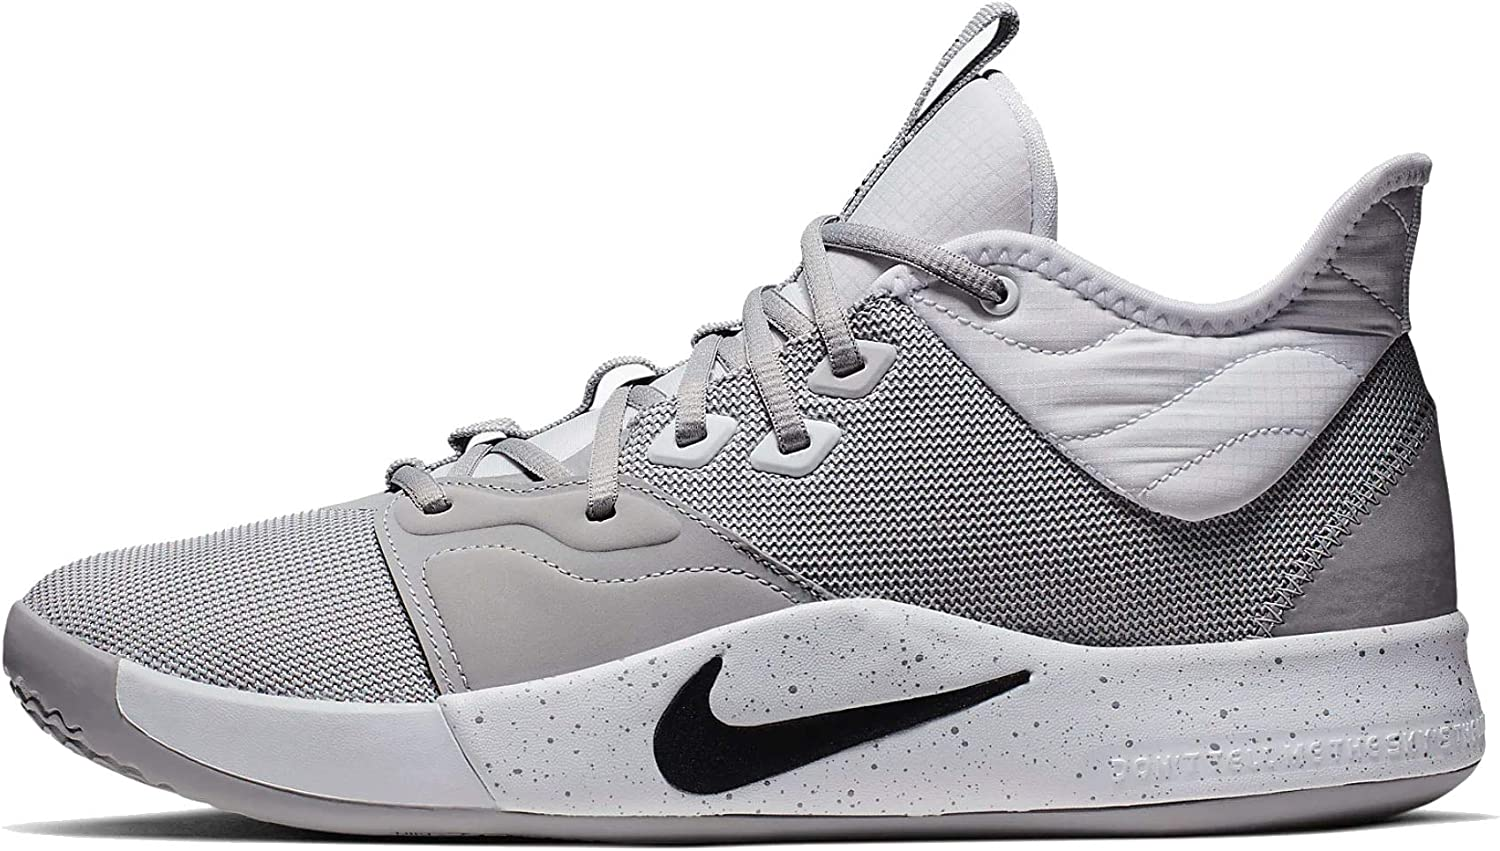 pg3 nike shoes Kevin Durant shoes on sale